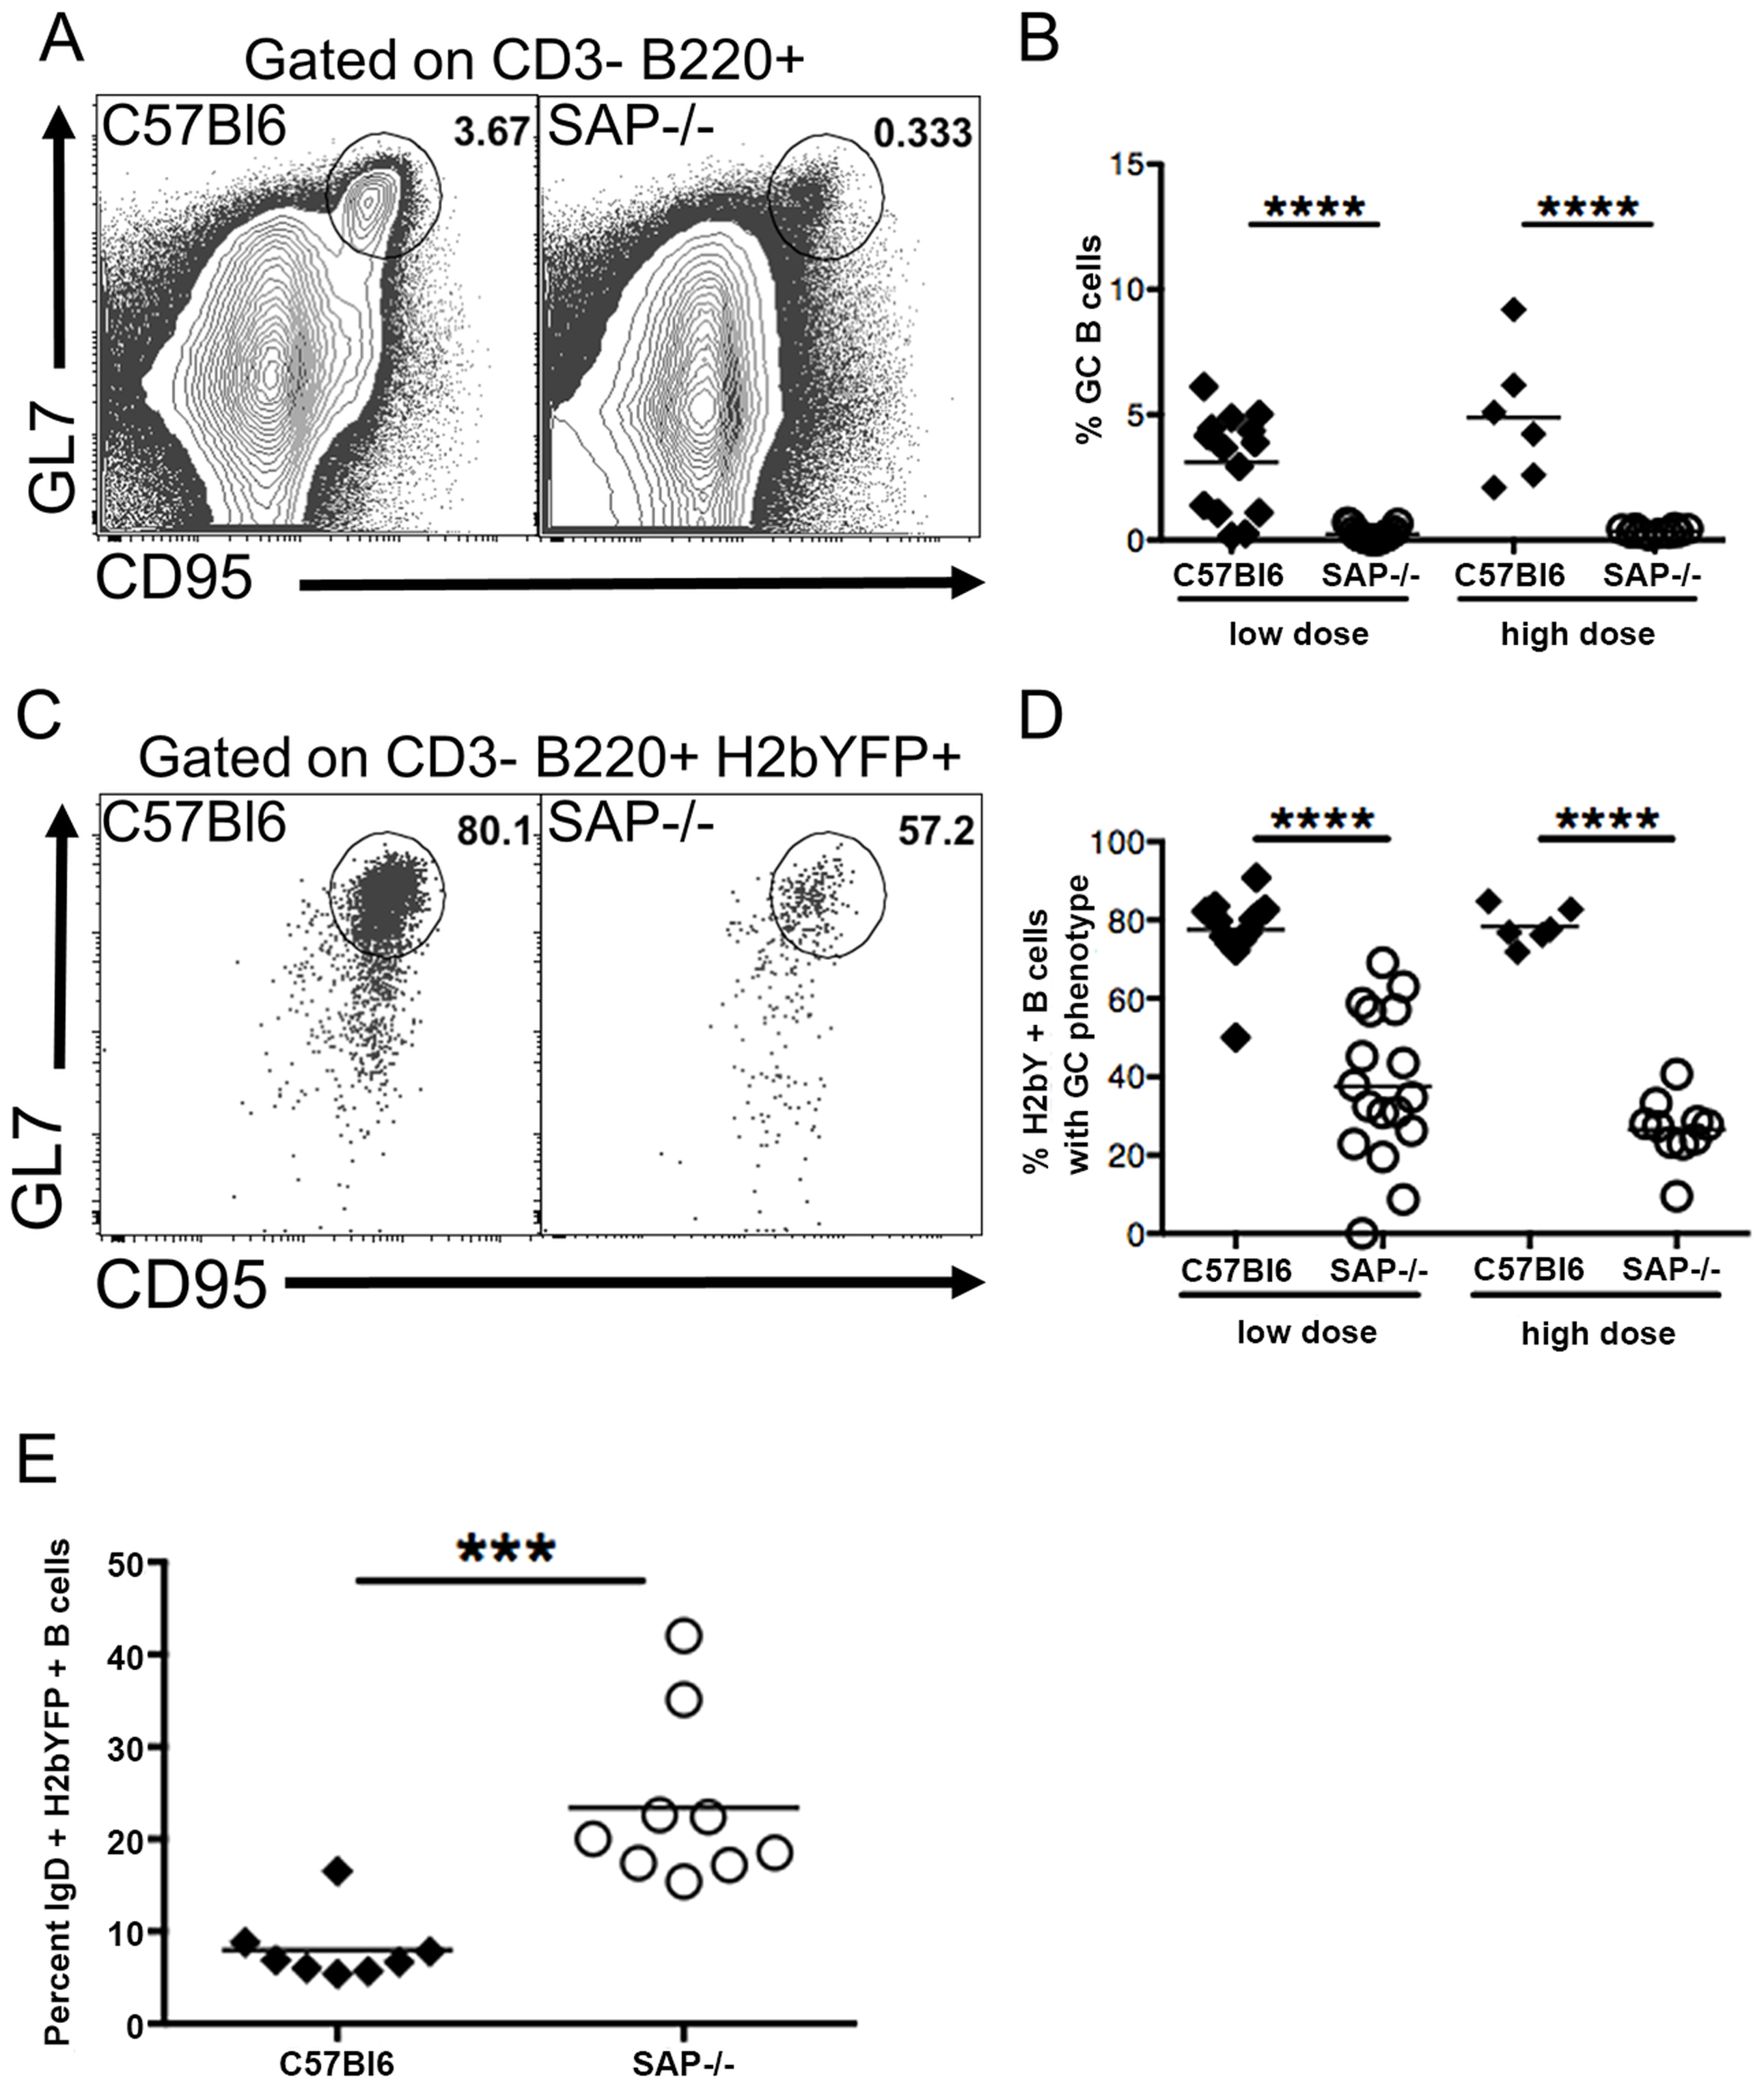 Reduced germinal center response in SAP-deficient mice.